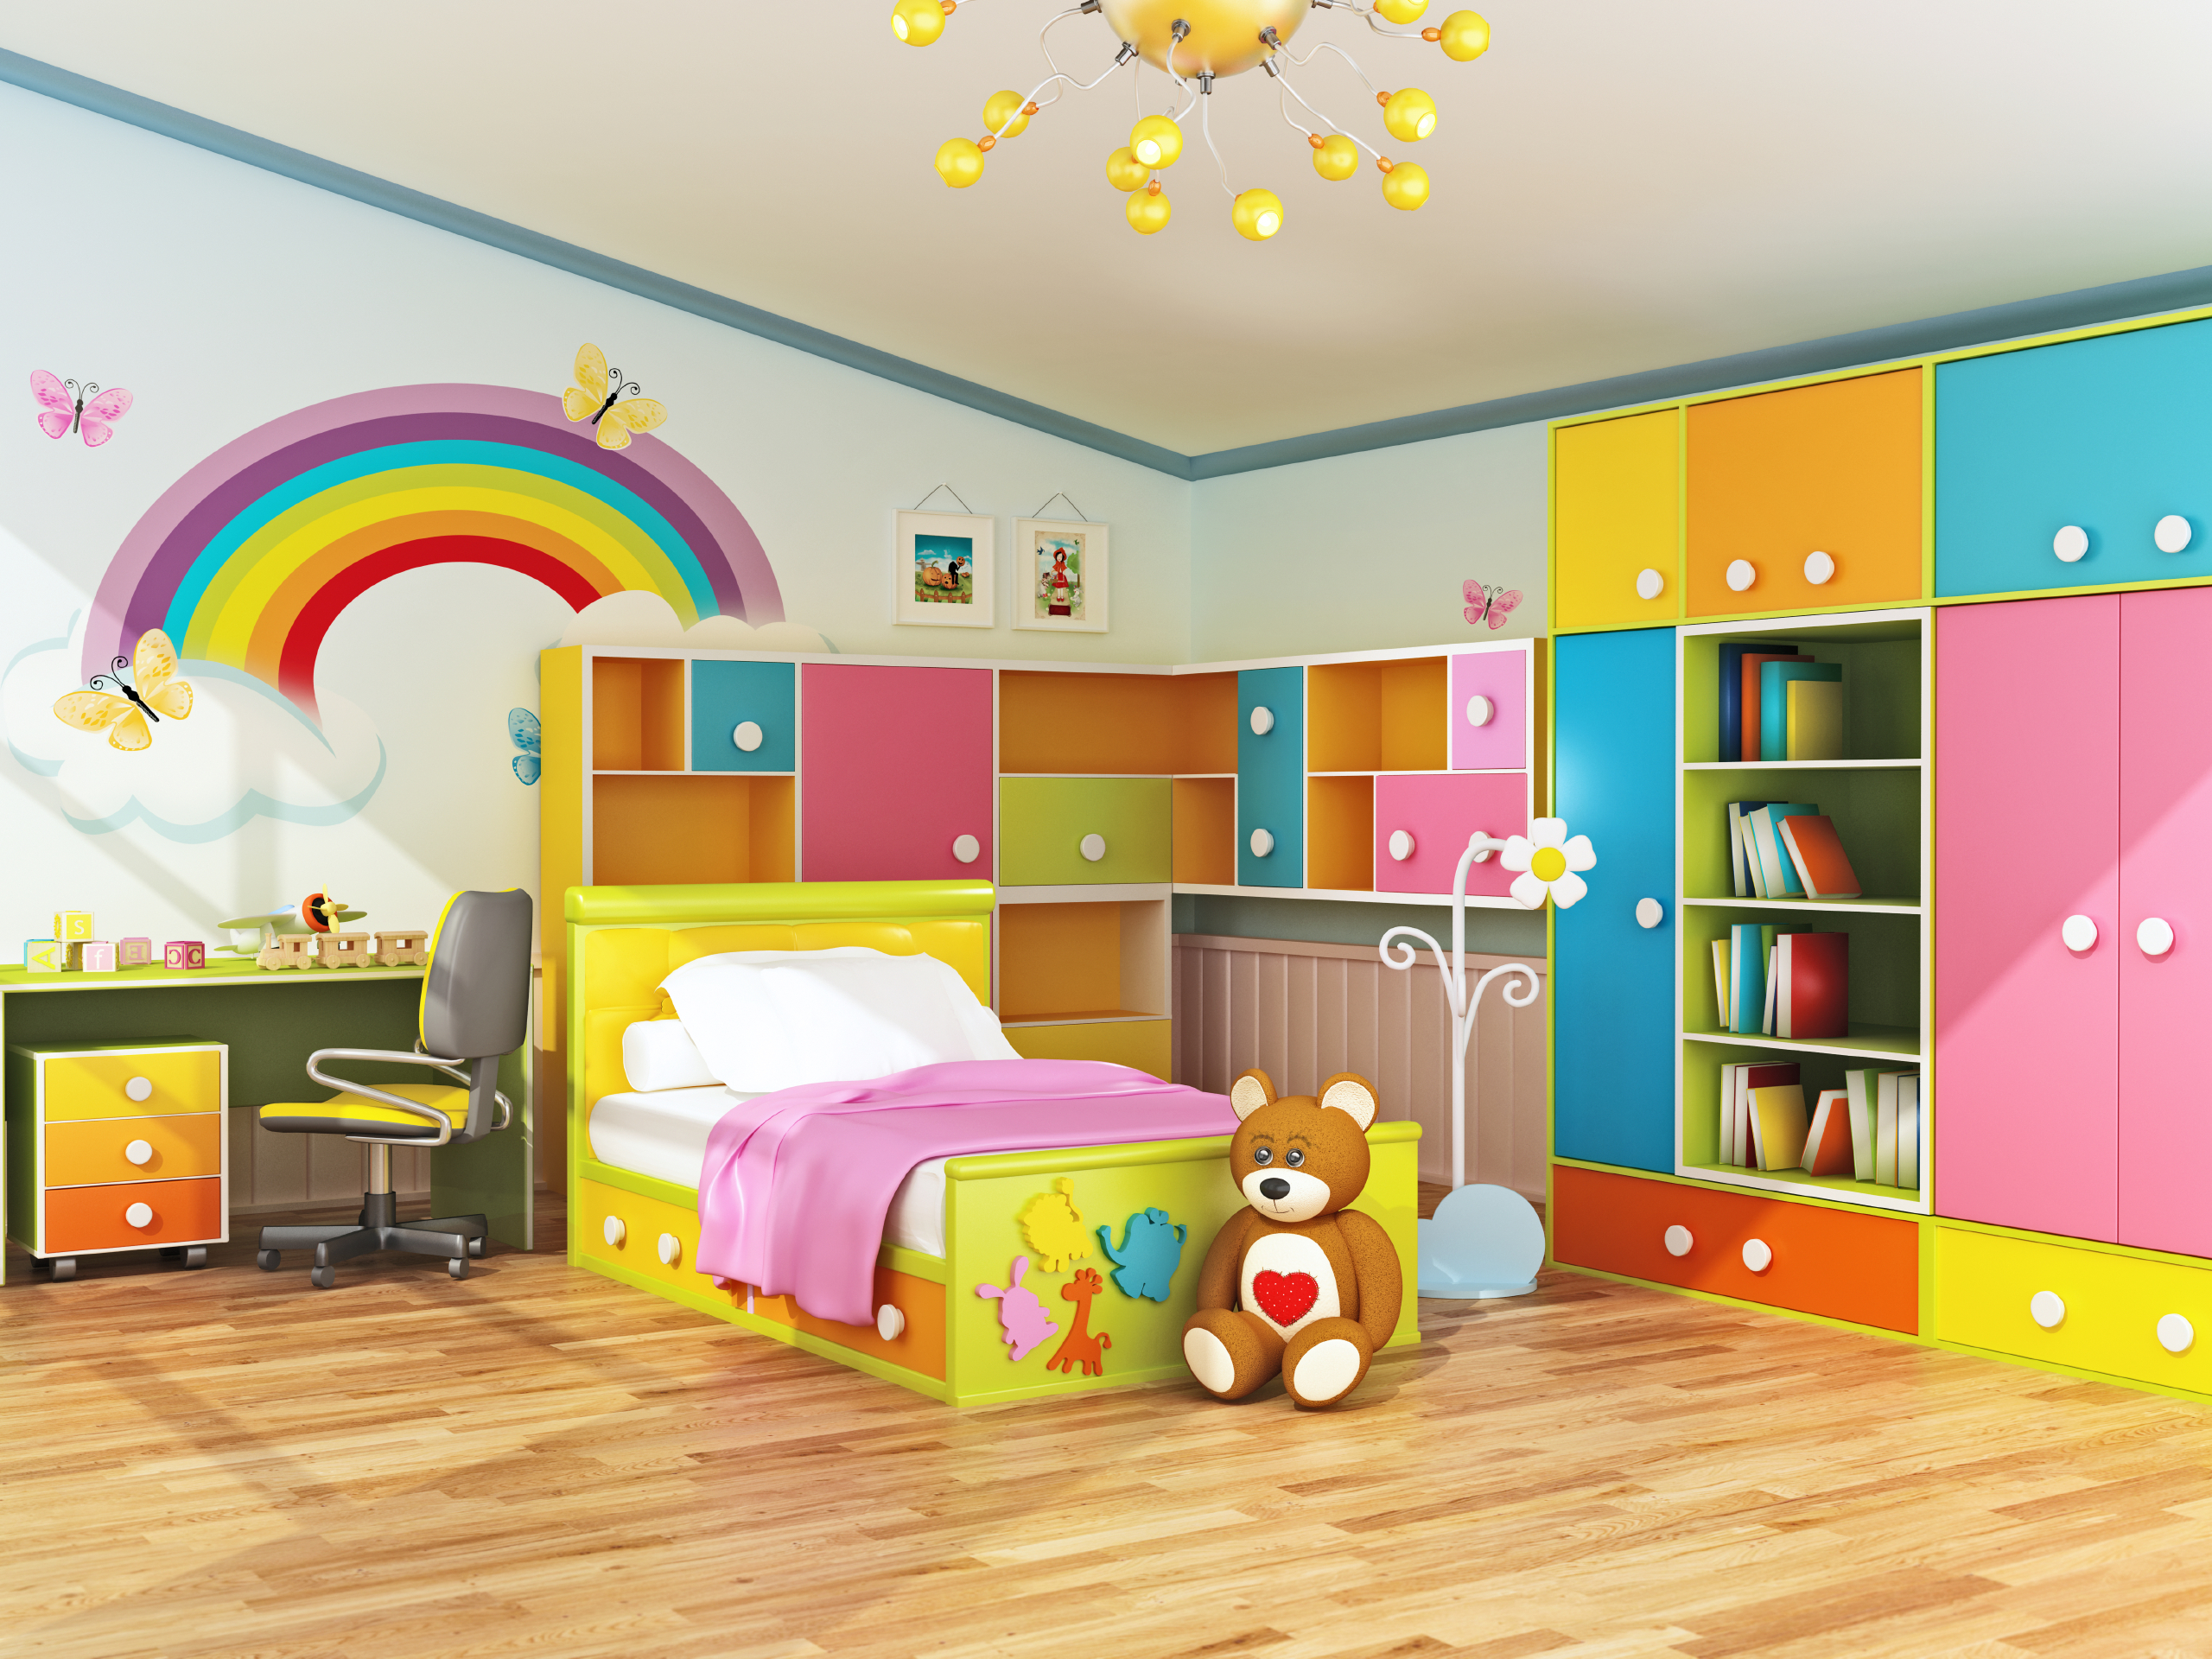 Plan ahead when decorating kids 39 bedrooms rismedia 39 s for Childrens bedroom ideas girls